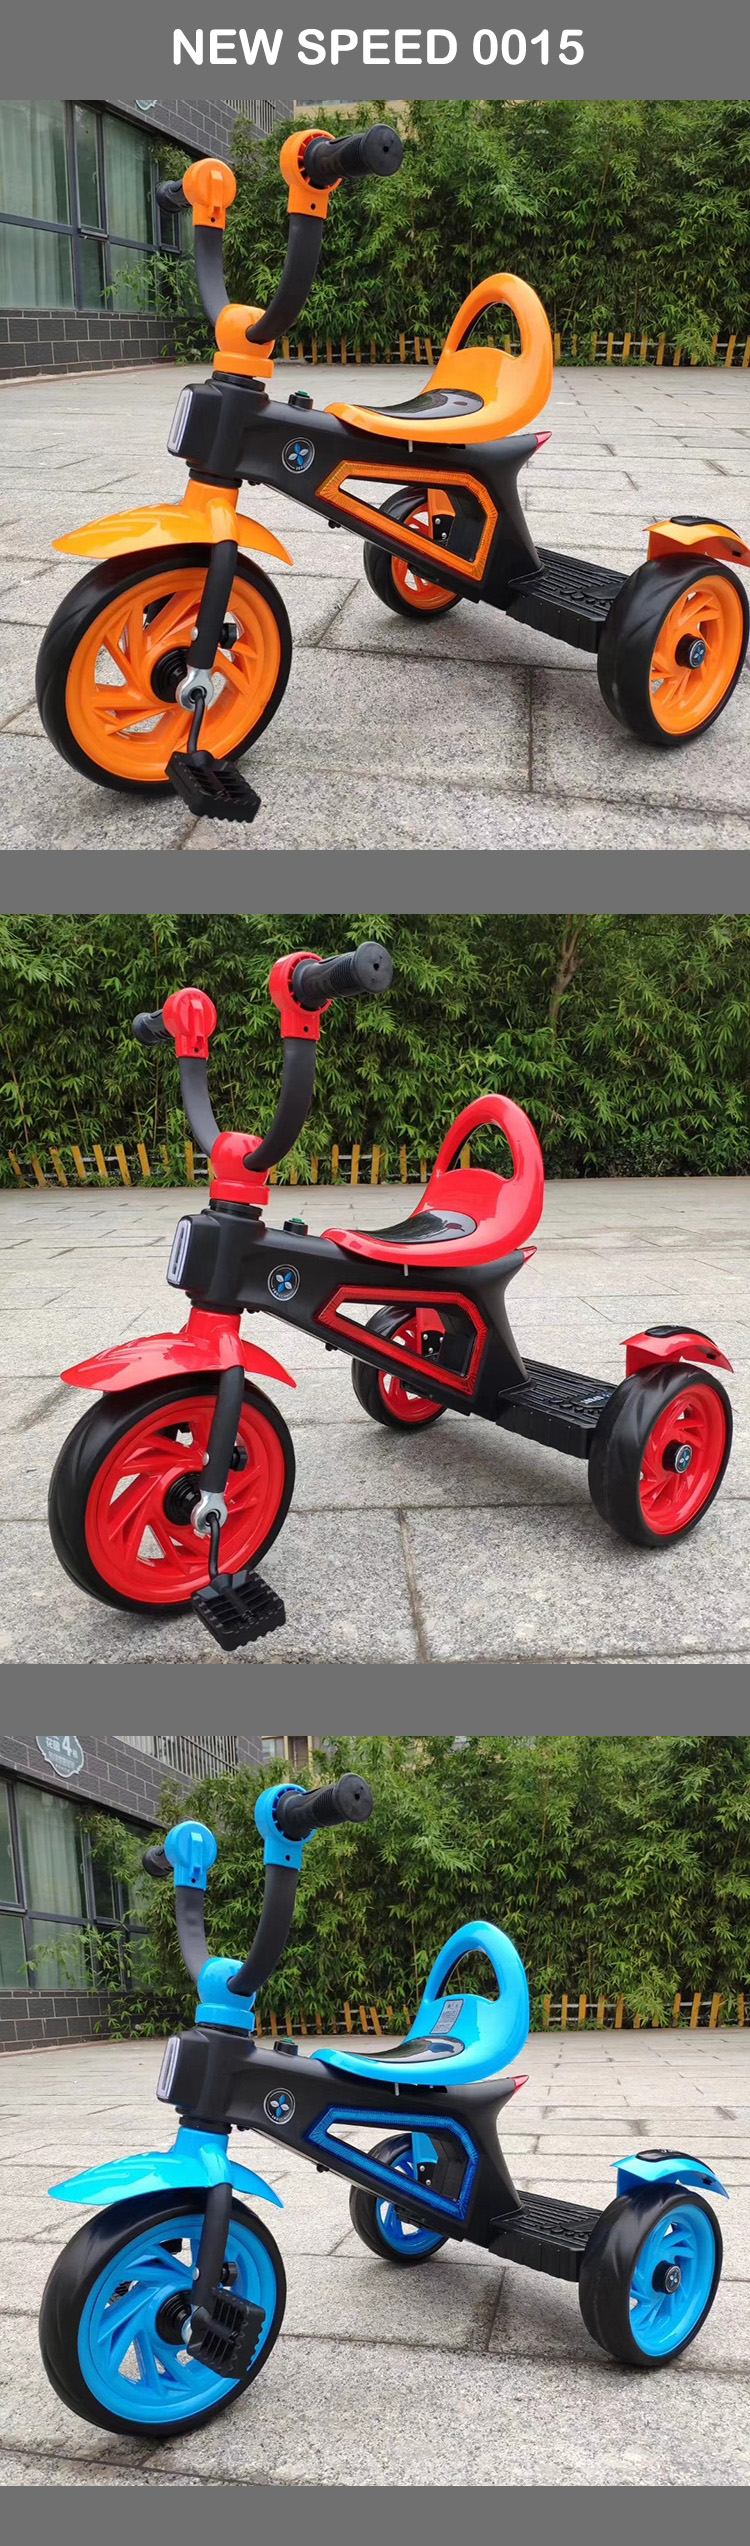 New fashion baby carrier trike Carbon steel tricycle bike for kids